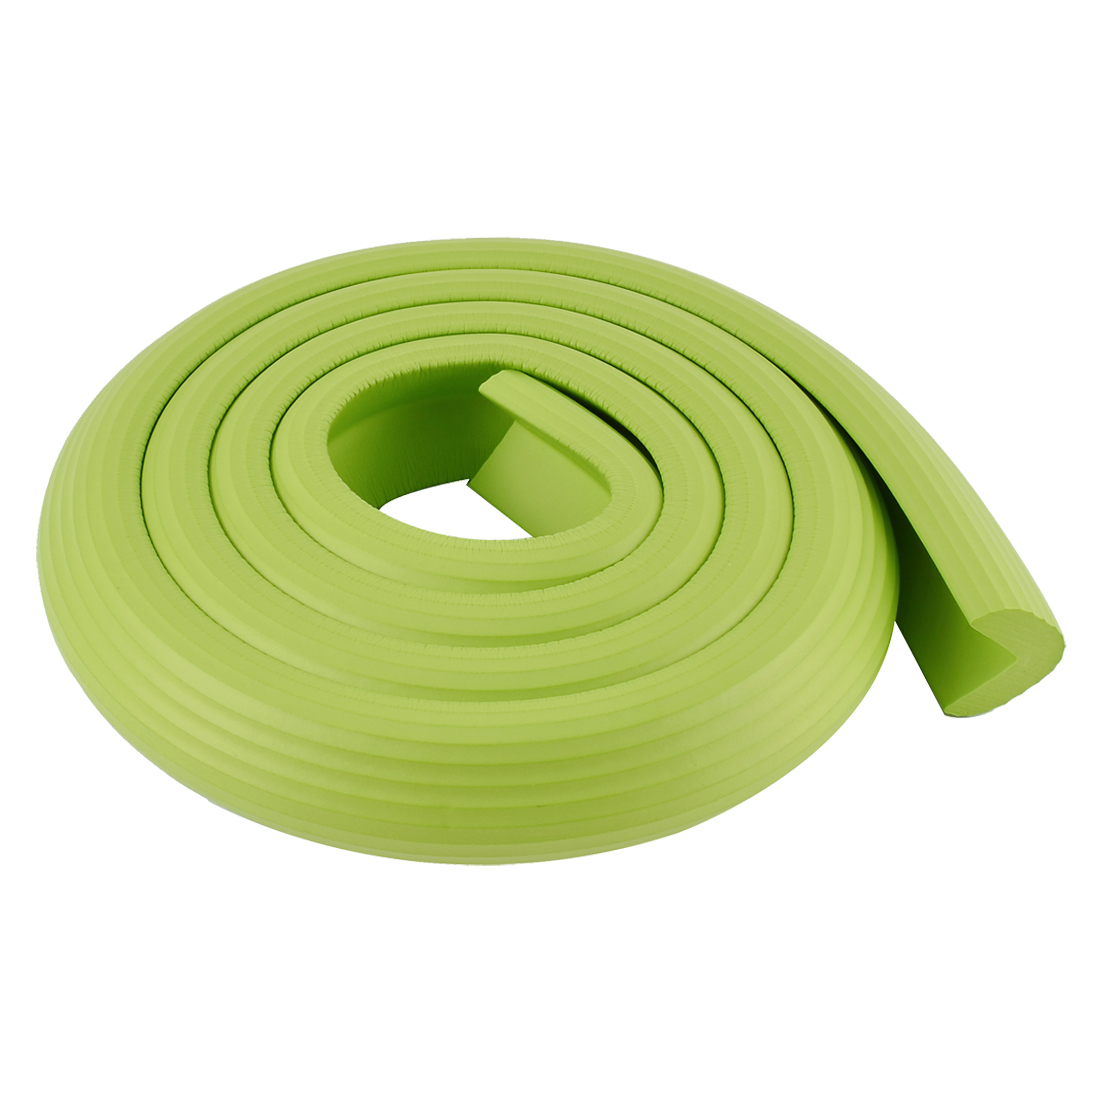 Furniture Corner Edge Soft Safety Protection Cushion Guard 2M Green